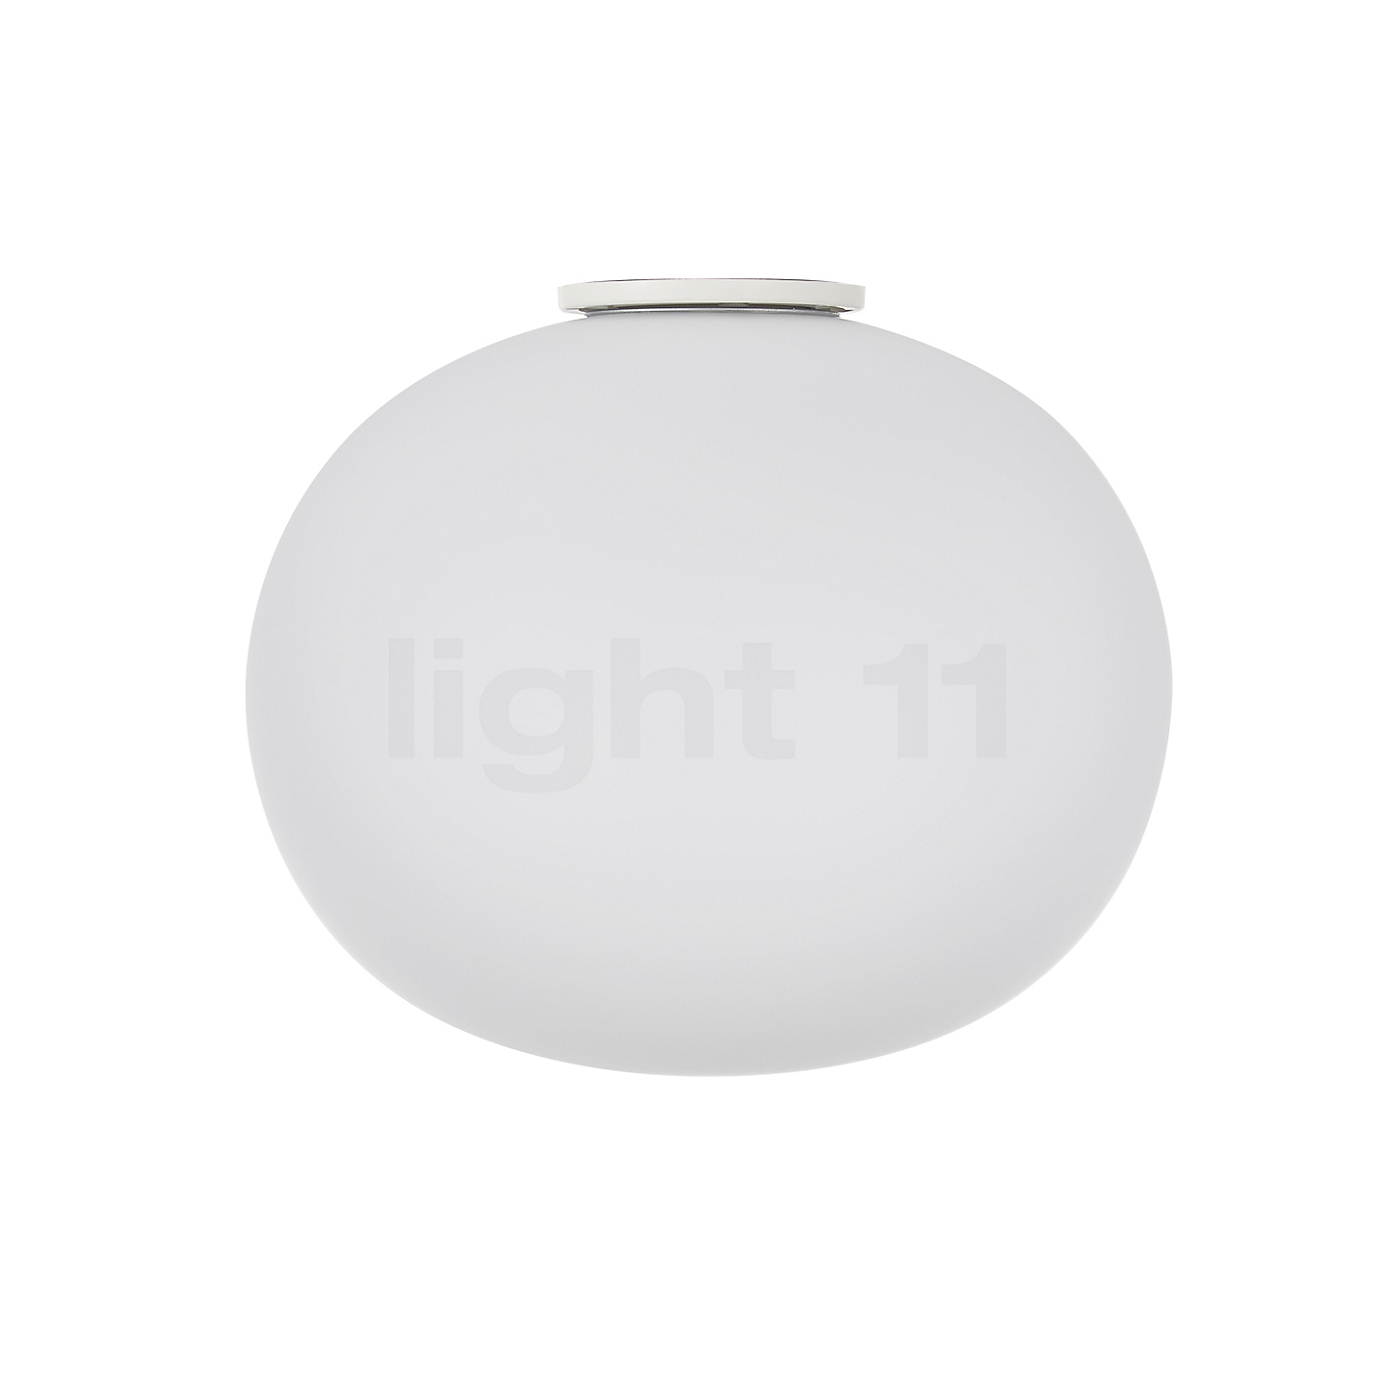 flos glo ball c1 ceiling lights buy at. Black Bedroom Furniture Sets. Home Design Ideas